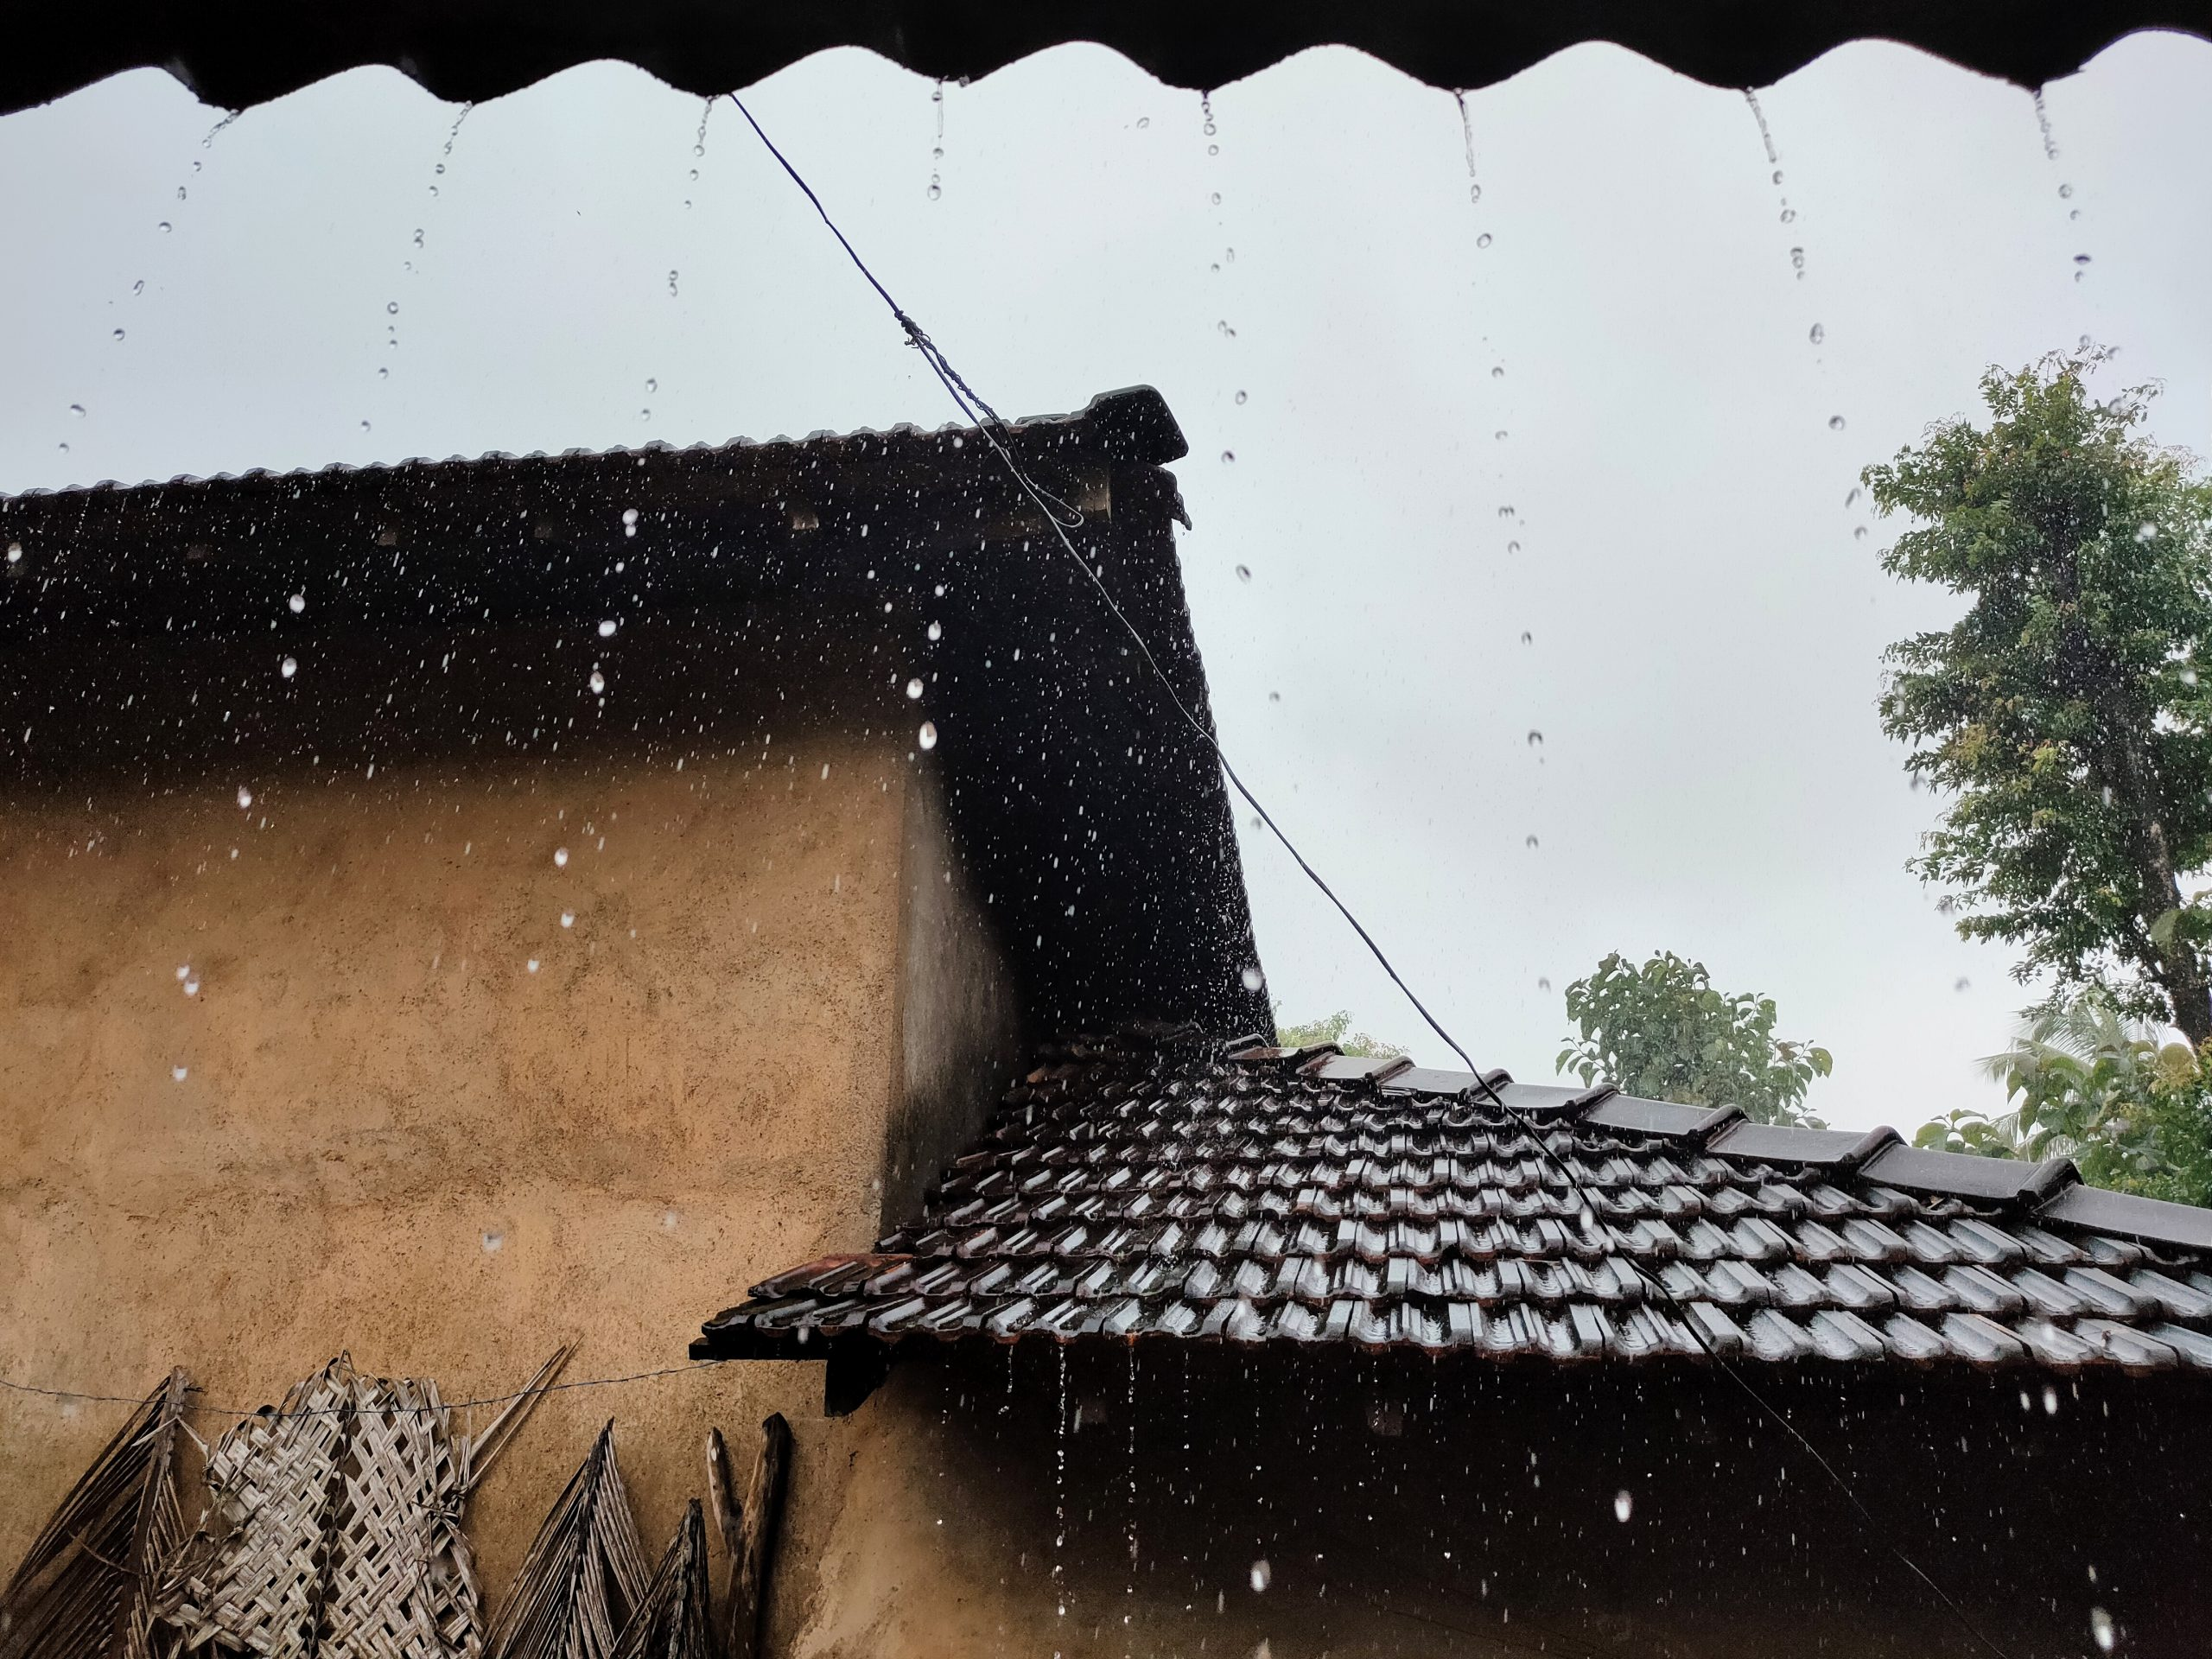 Rain in the village